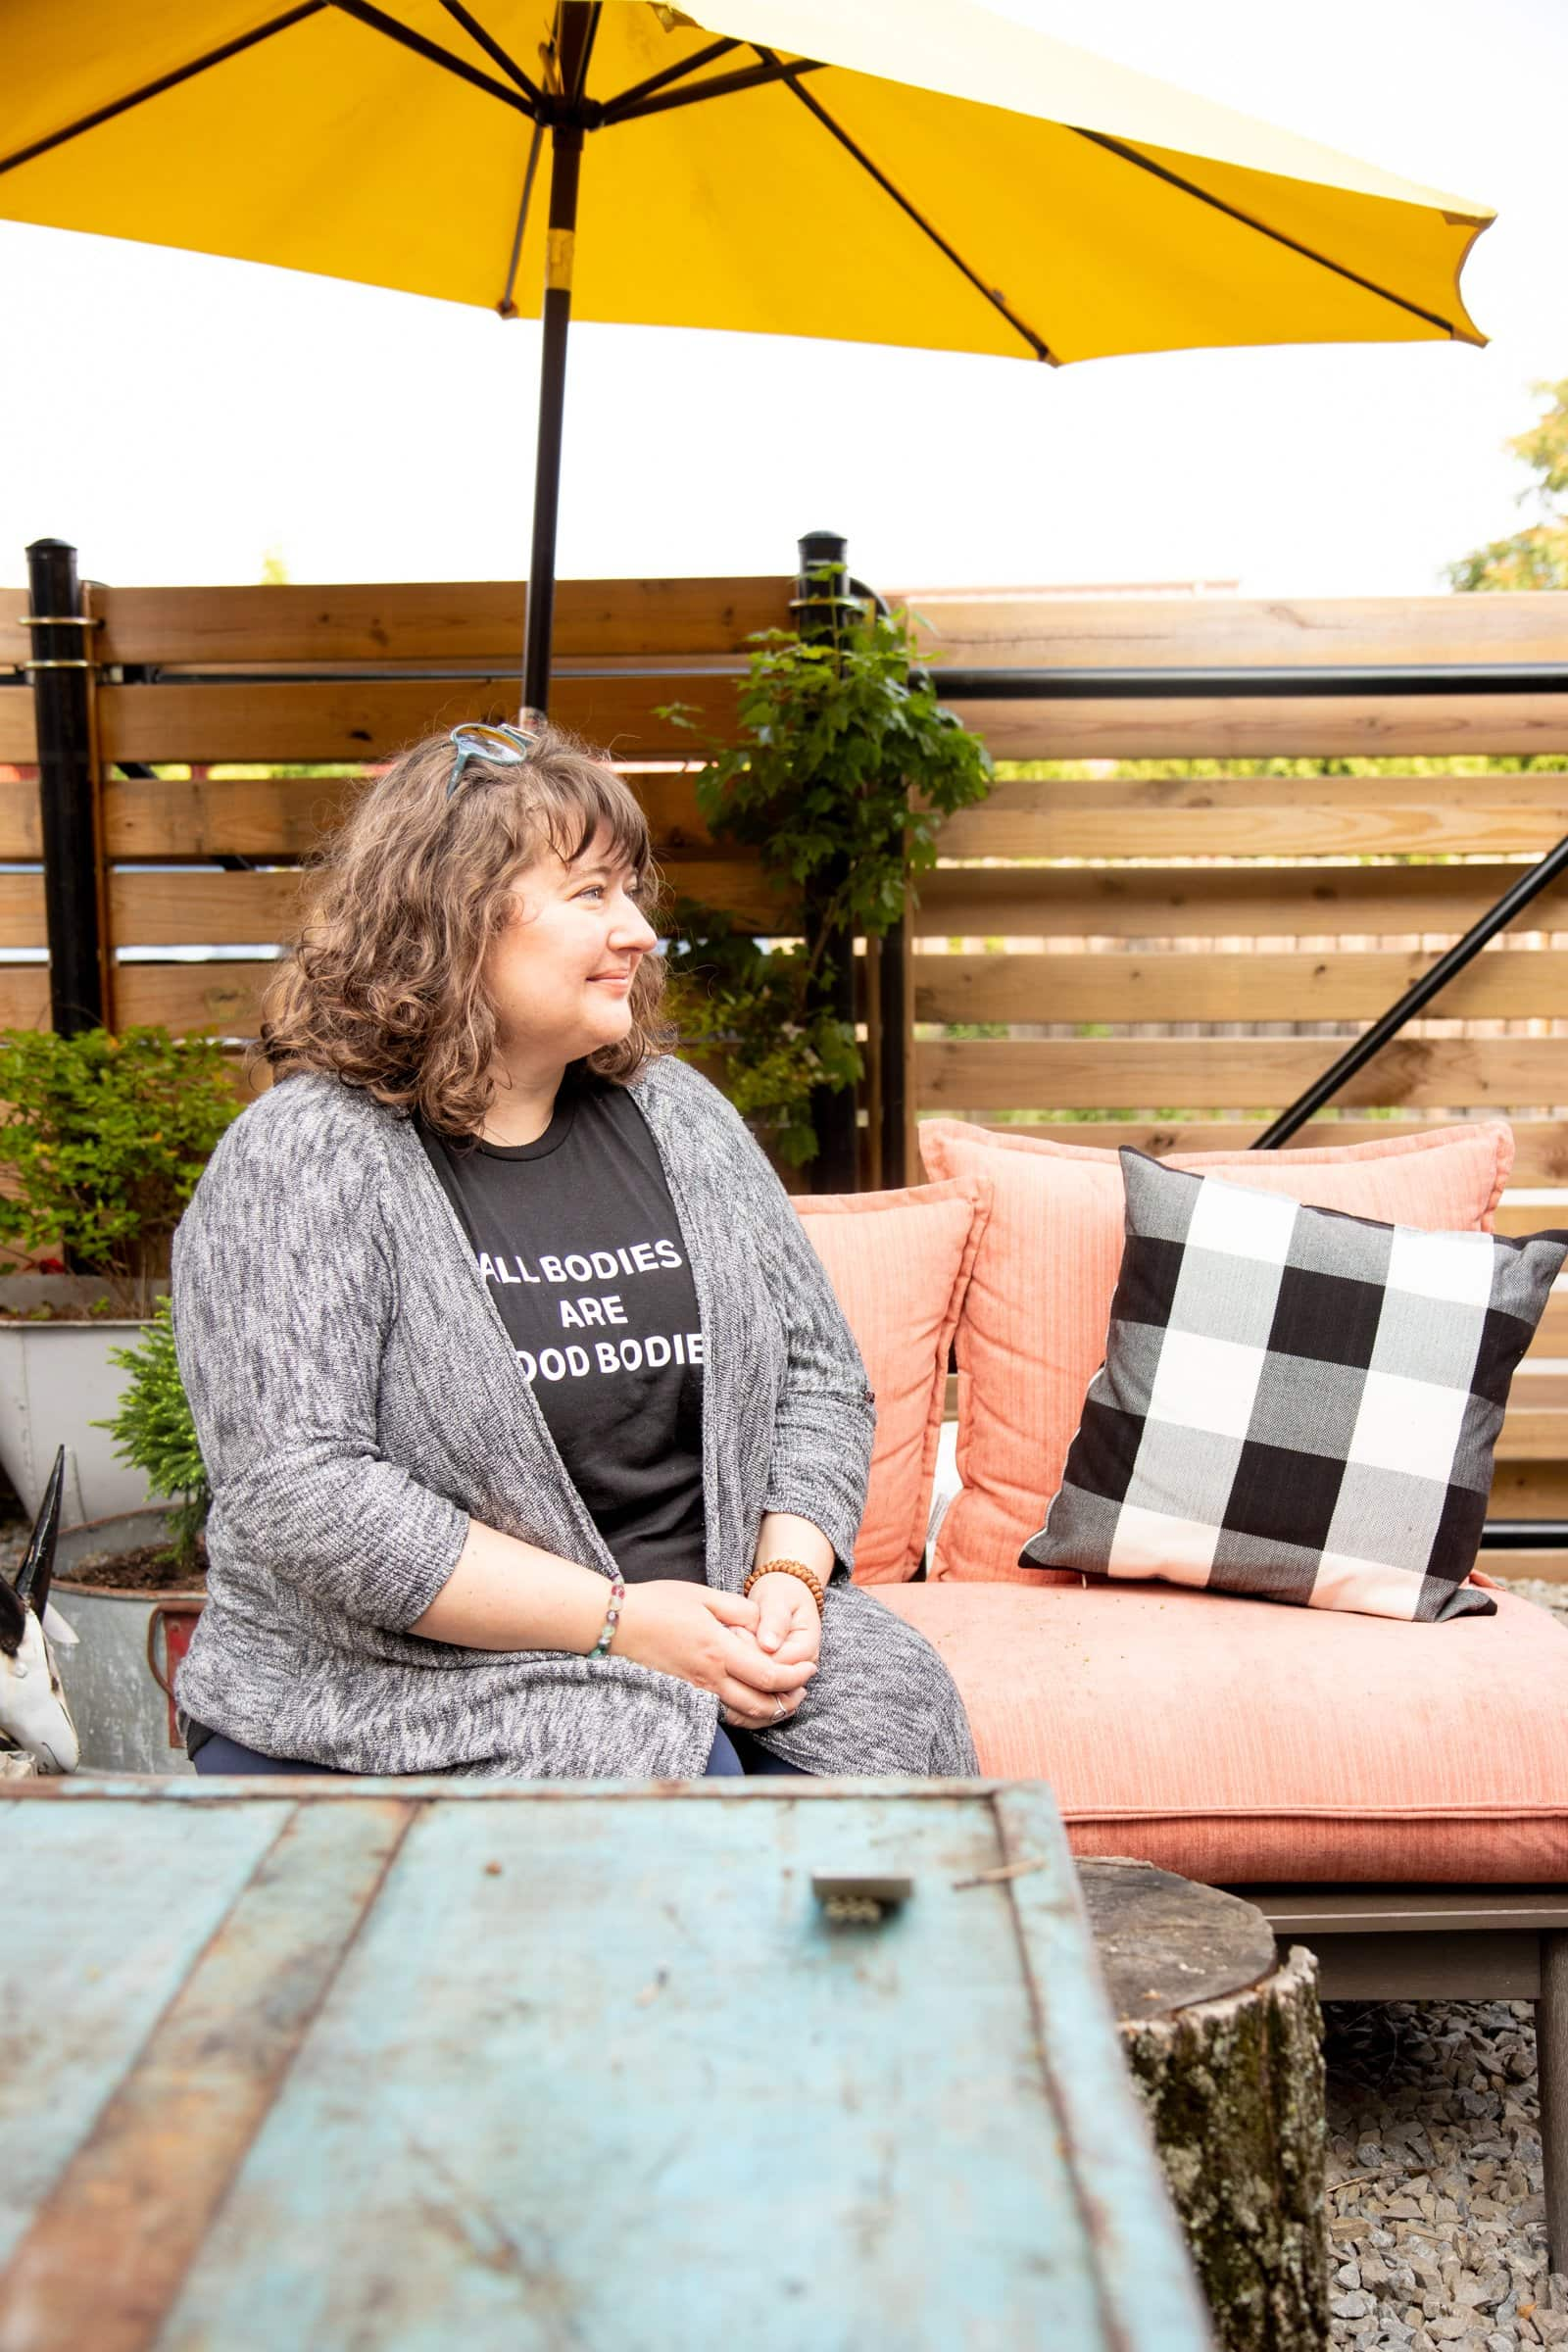 Brunette curly-haired woman sitting pensively on an outdoor couch.